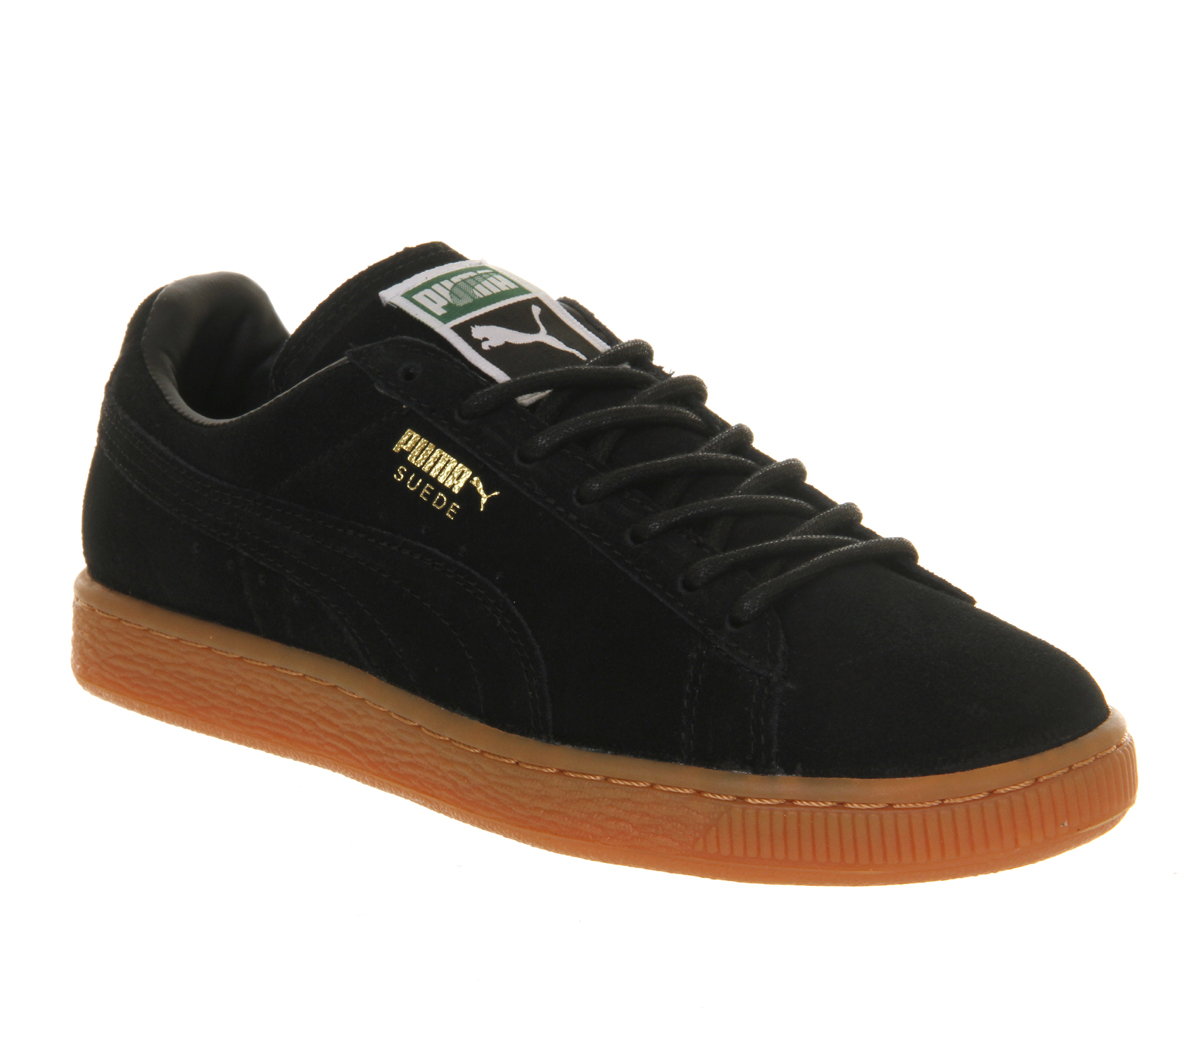 Details about puma womens suede classic rg black running shoes - Gallery